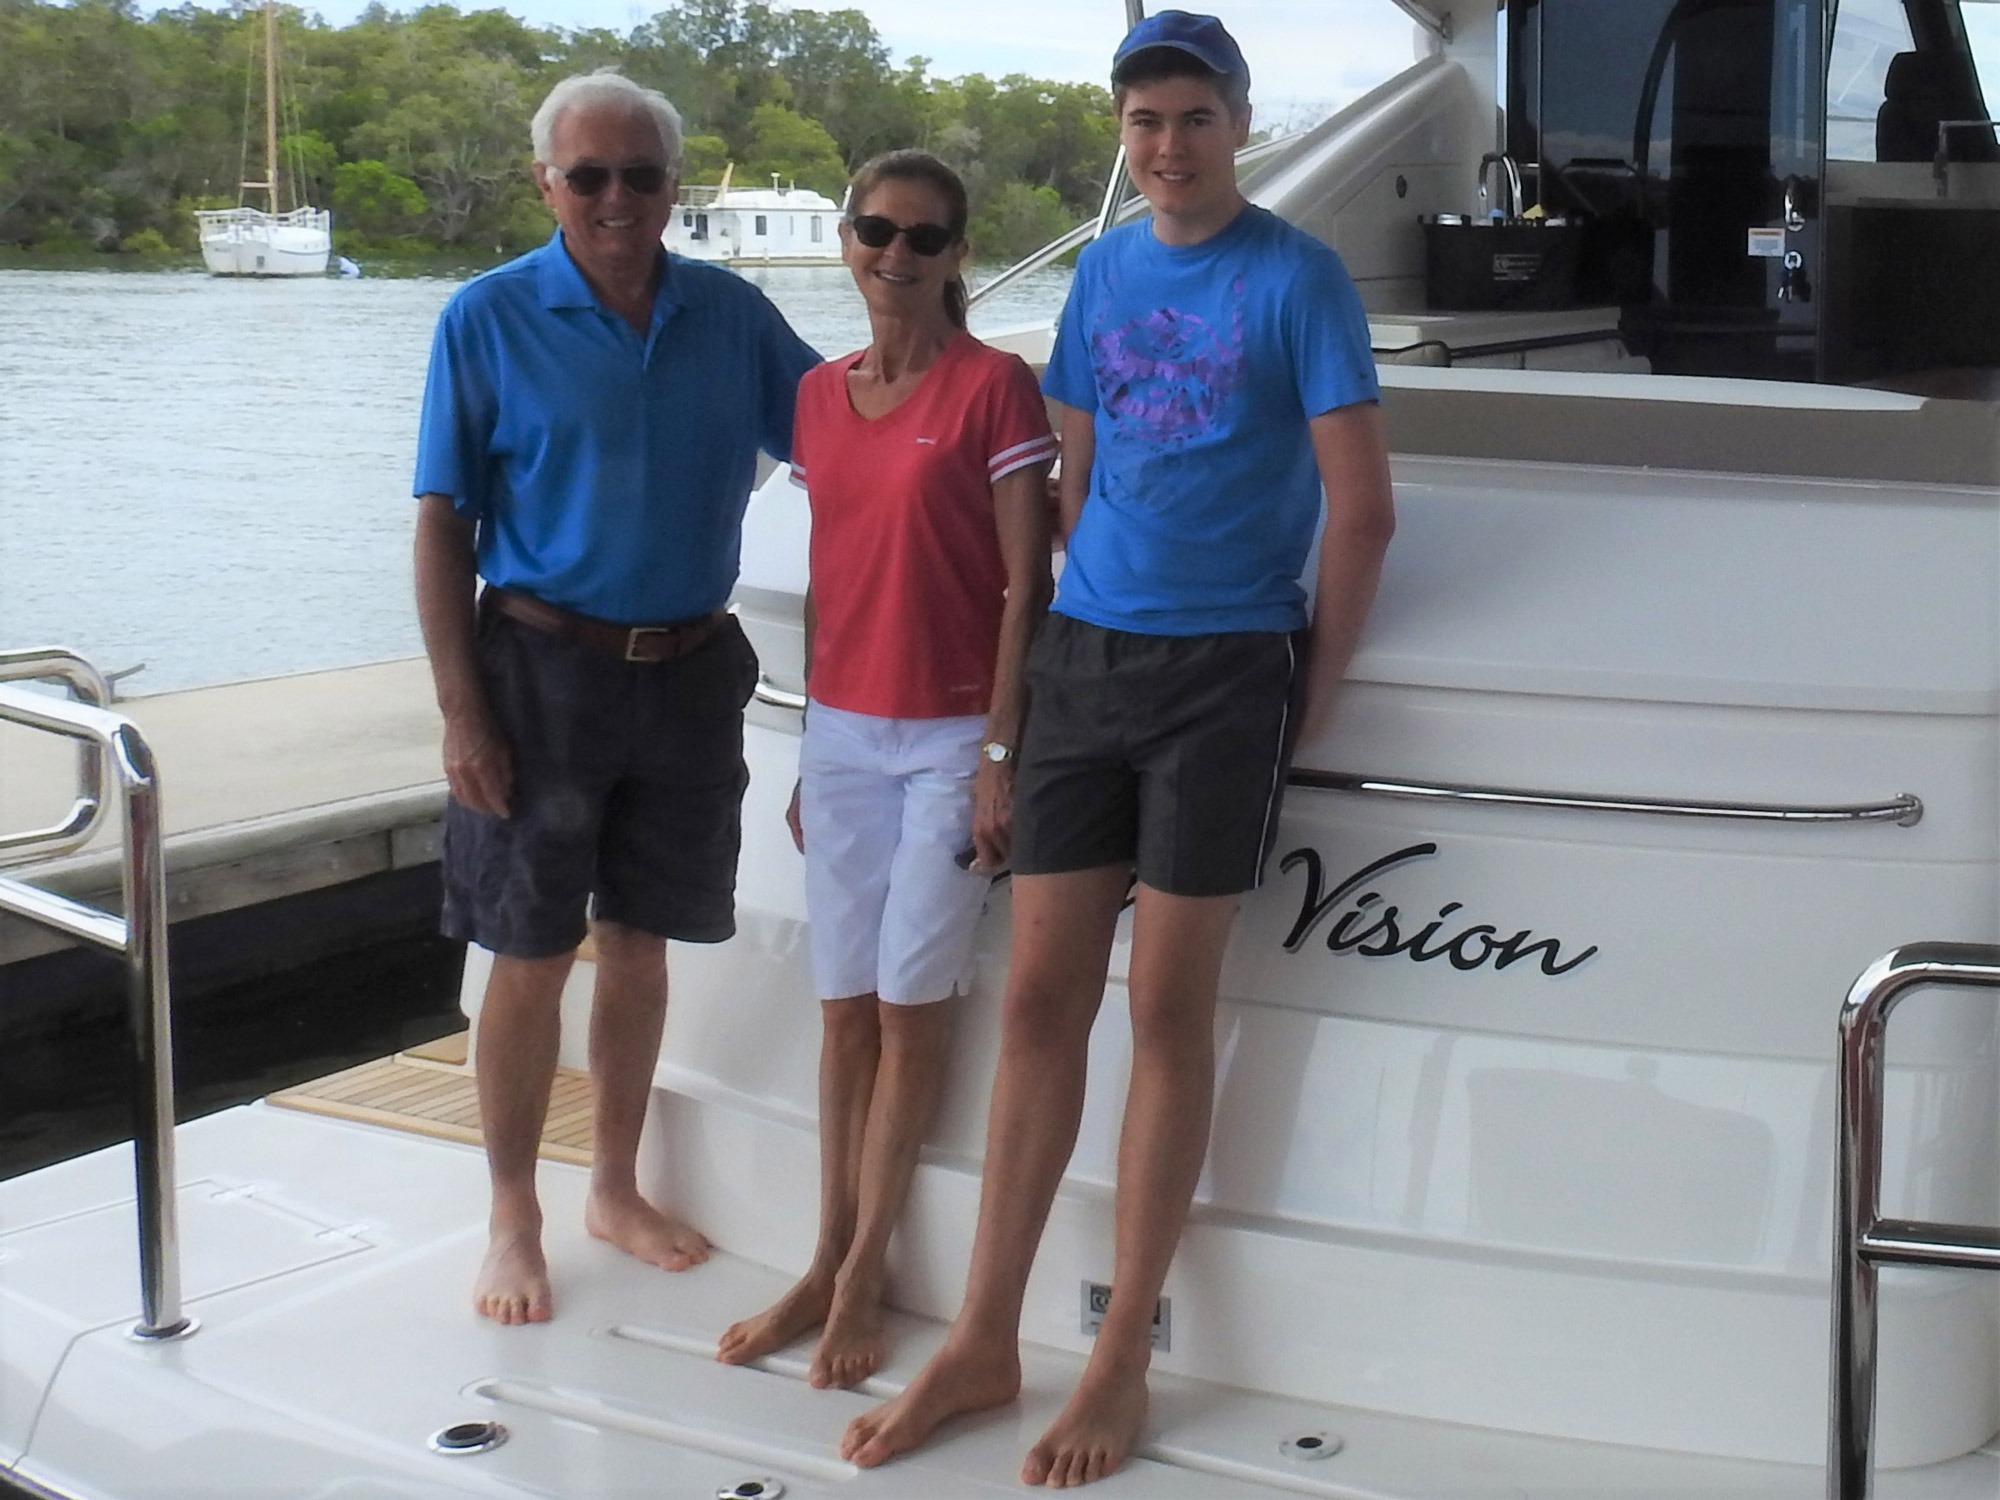 Paul, Diane and James on board Knight Vision.